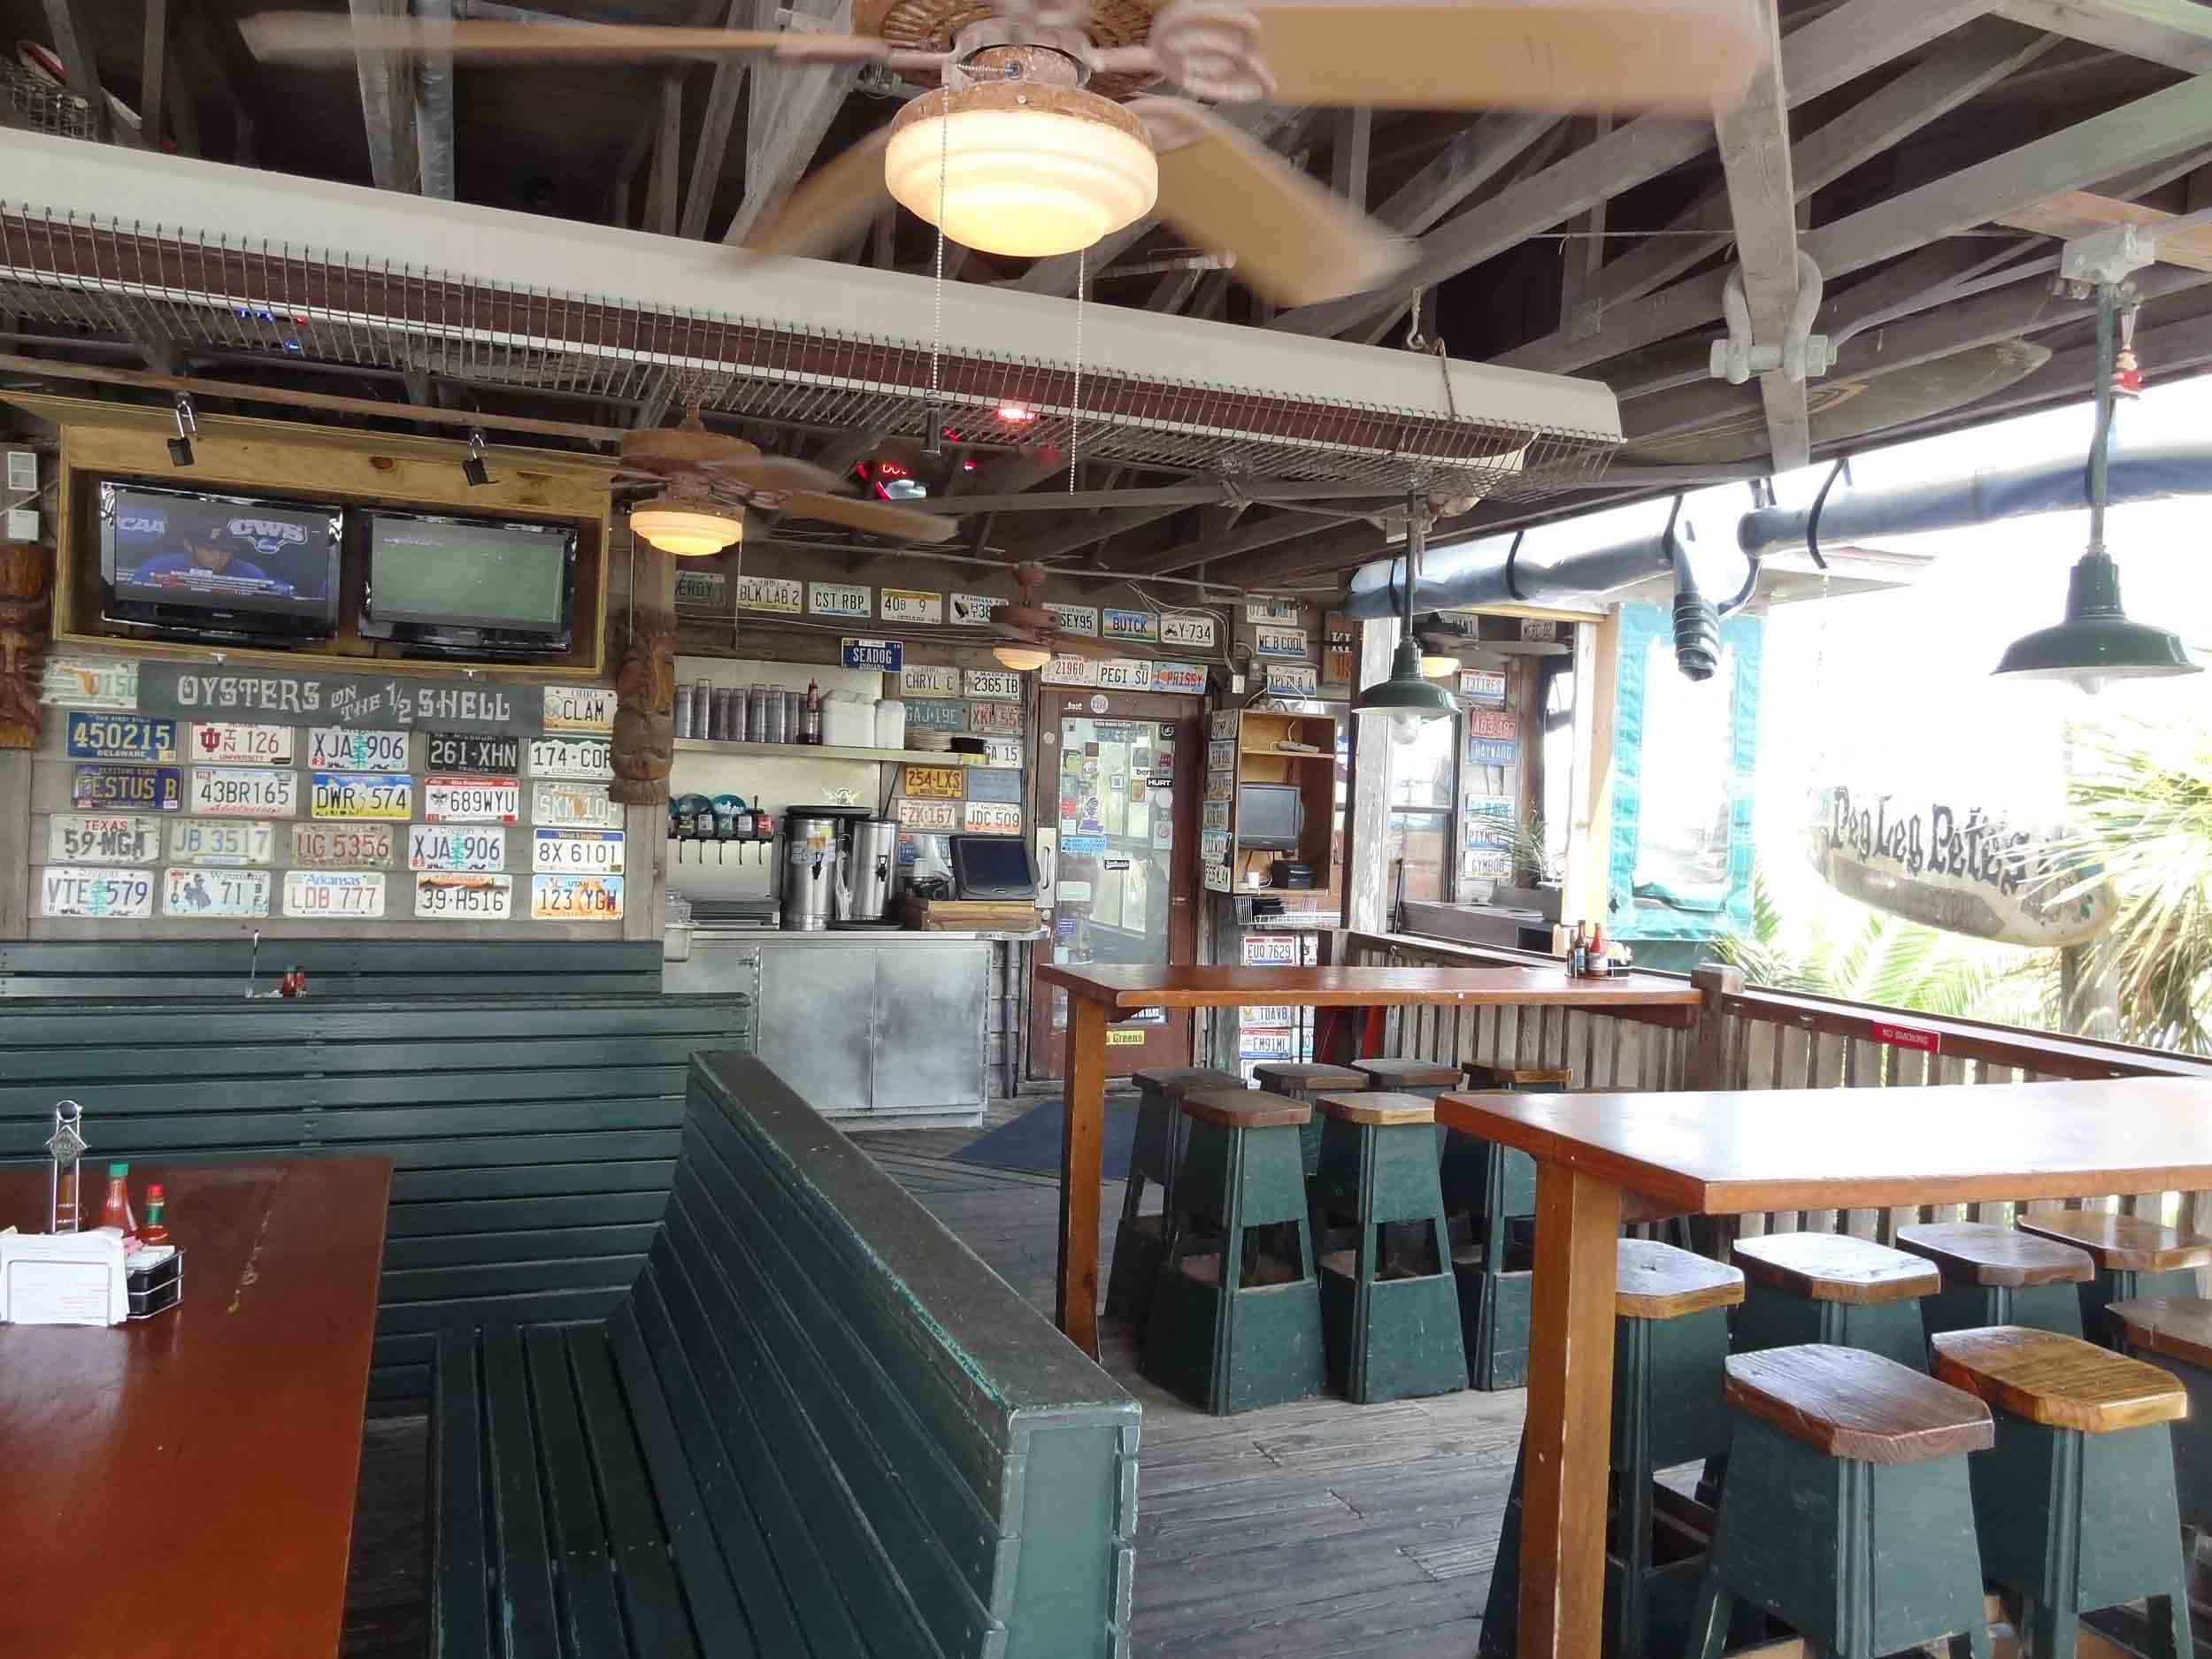 Peg Leg Pete's Oyster Bar Interior Dining Area